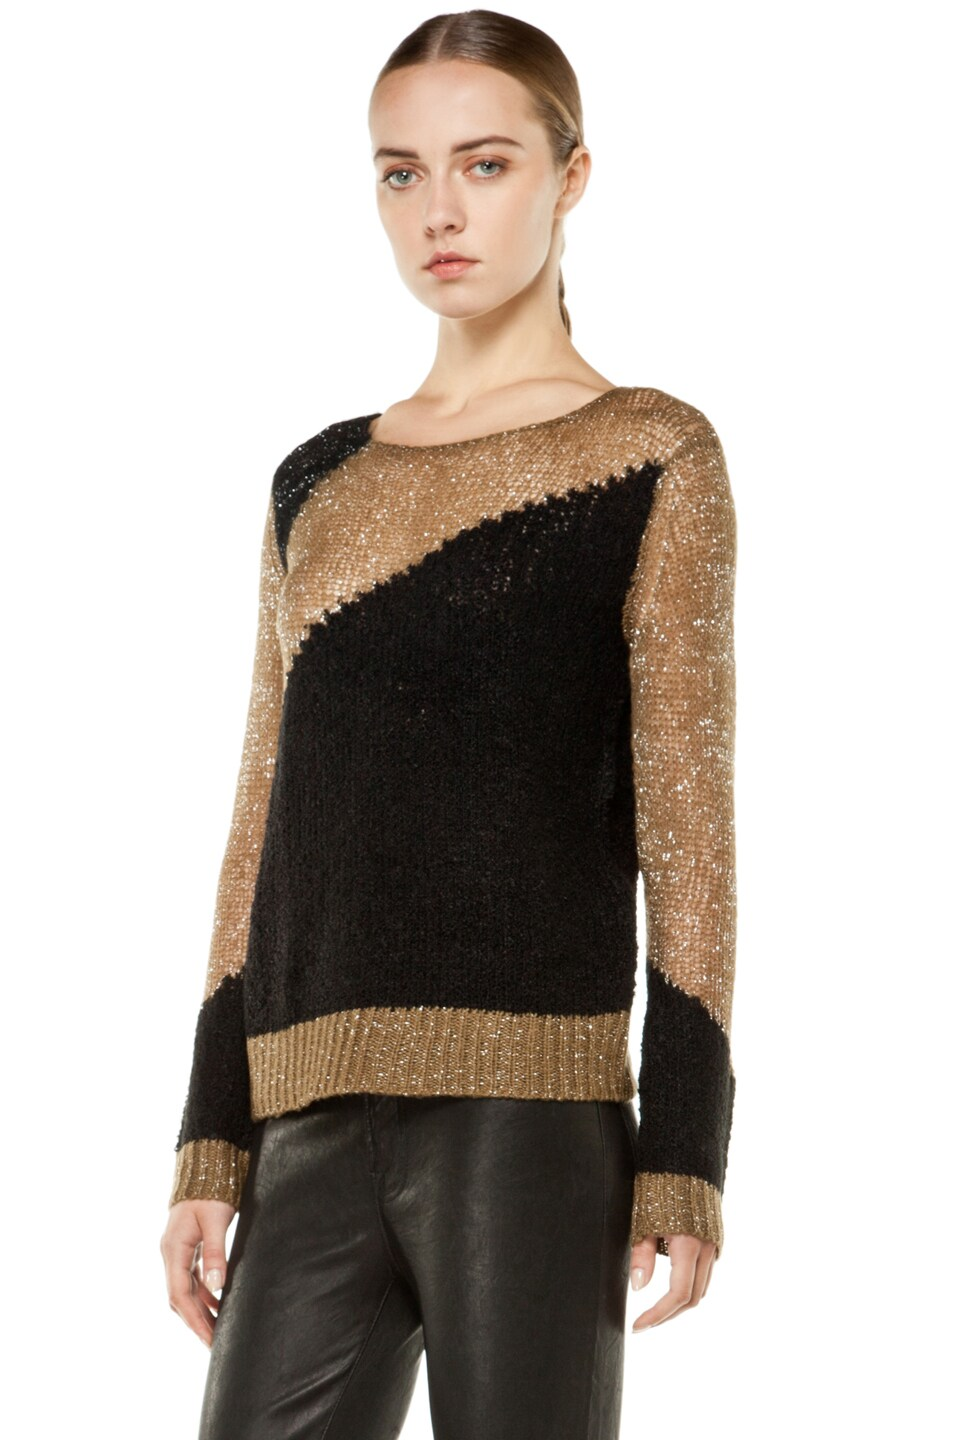 0d091fa0df29ed Image 2 of Alice + Olivia Opal Novelty Stitch Crewneck Sweater in Beige &  Black